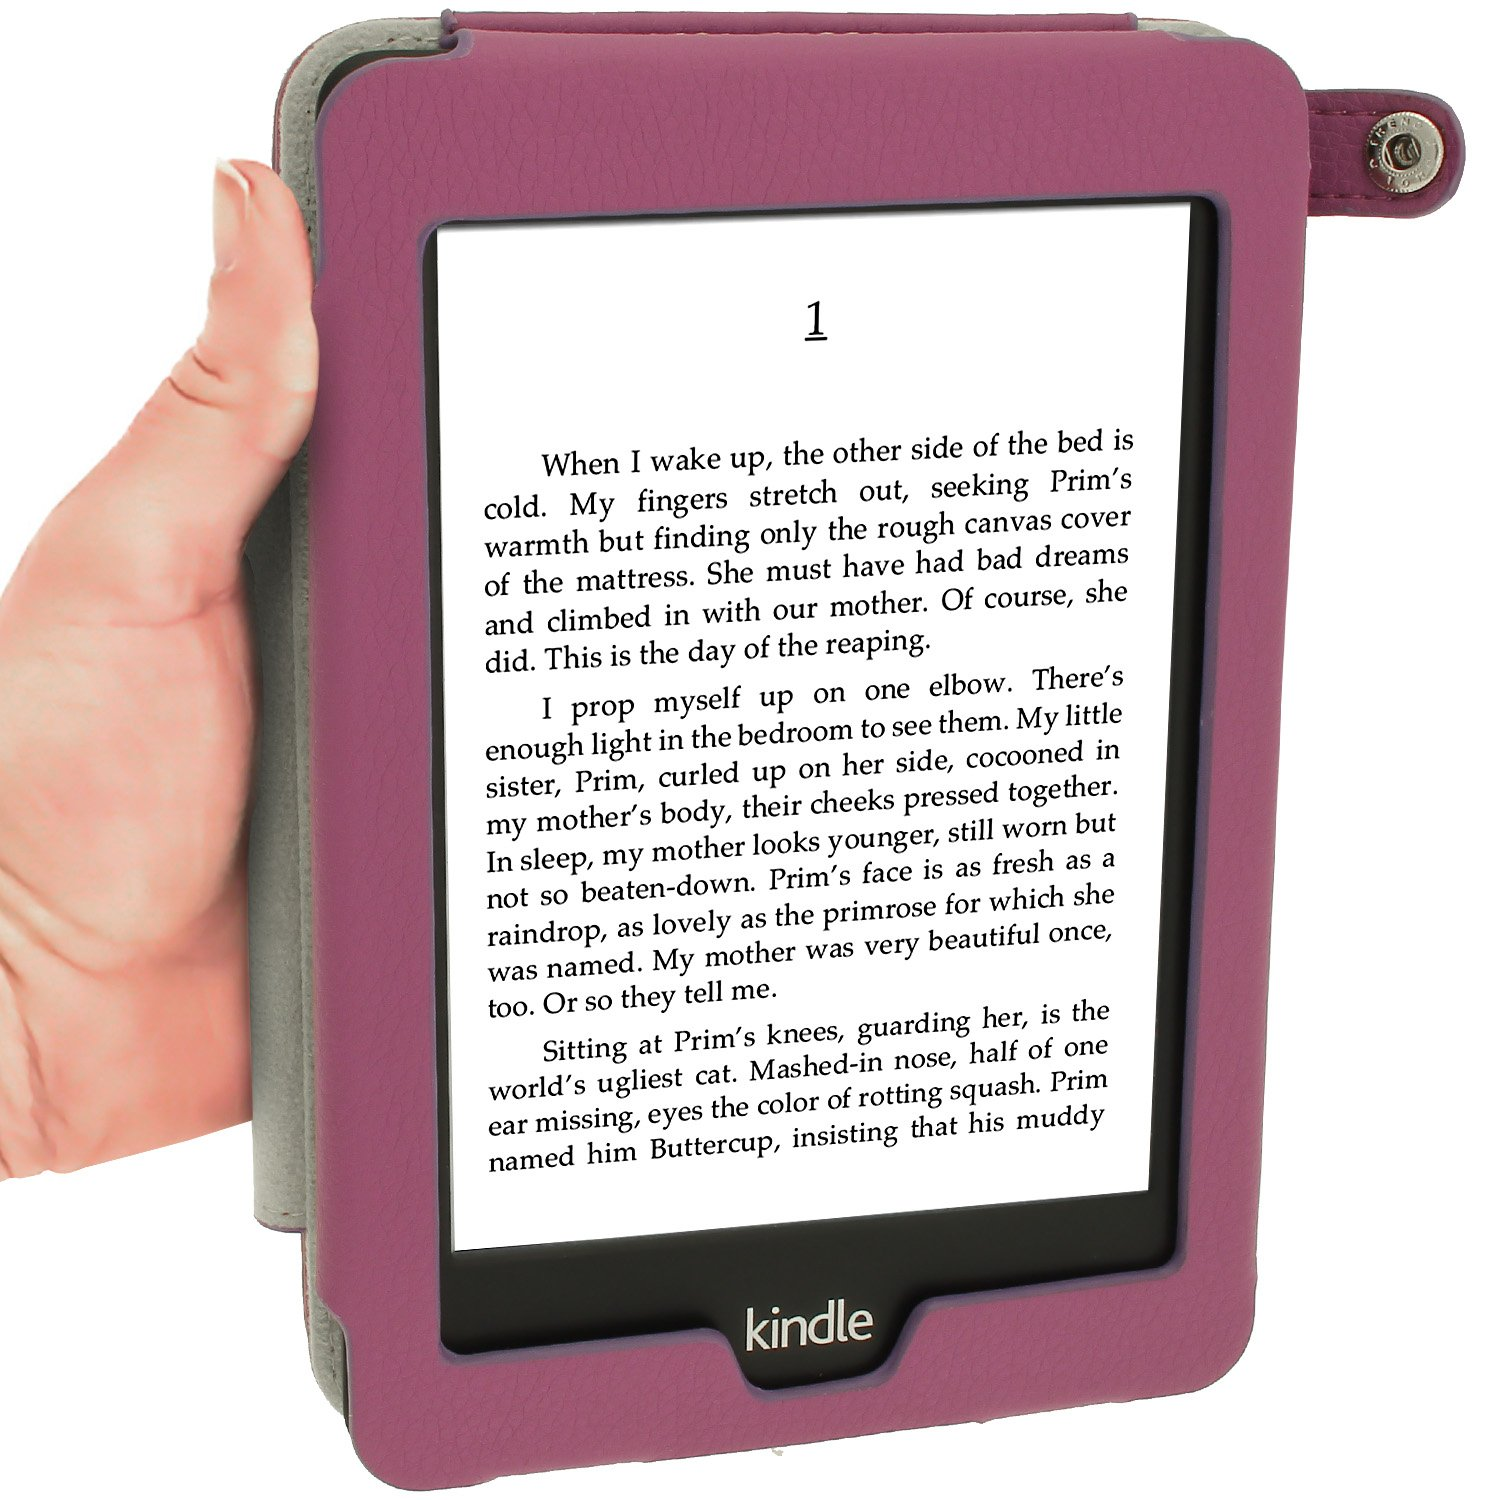 iGadgitz Purple PU 'Bi-View' Leather Case Cover for Amazon Kindle Paperwhite 2015 2014 2013 2012 With Sleep/Wake Function & Integrated Hand Strap by igadgitz (Image #7)